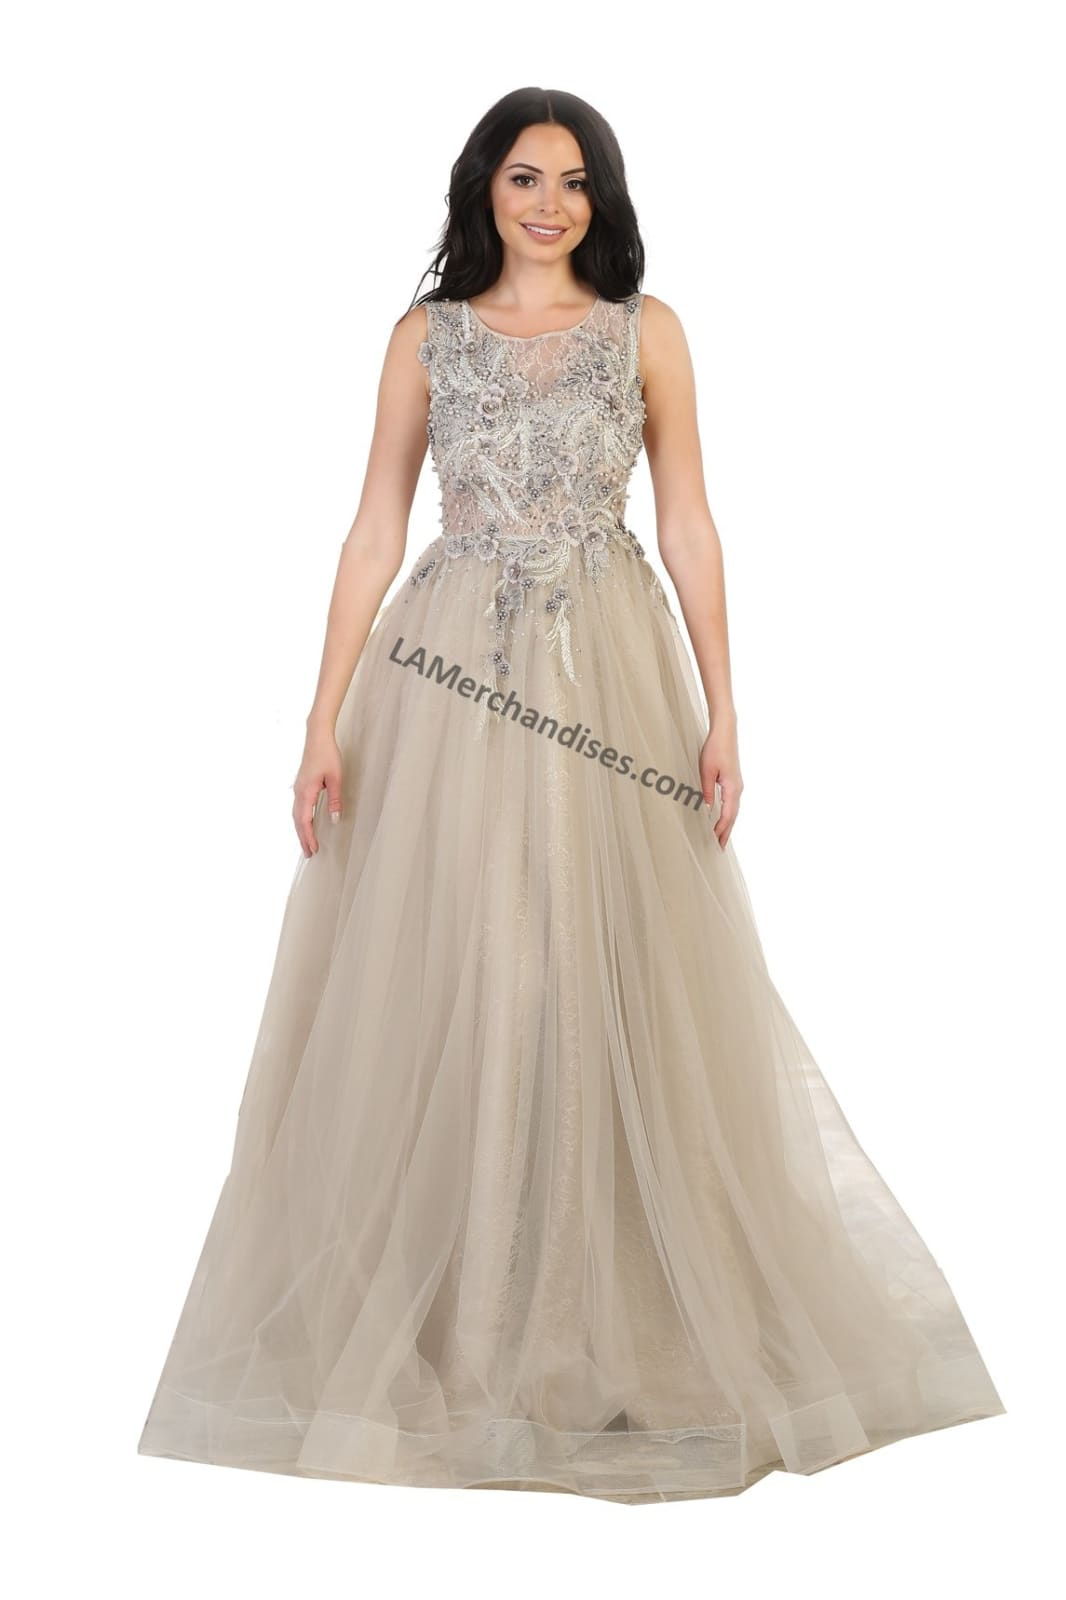 Sleeveless embroidered & pearls mesh ballgown - RQ7527 -